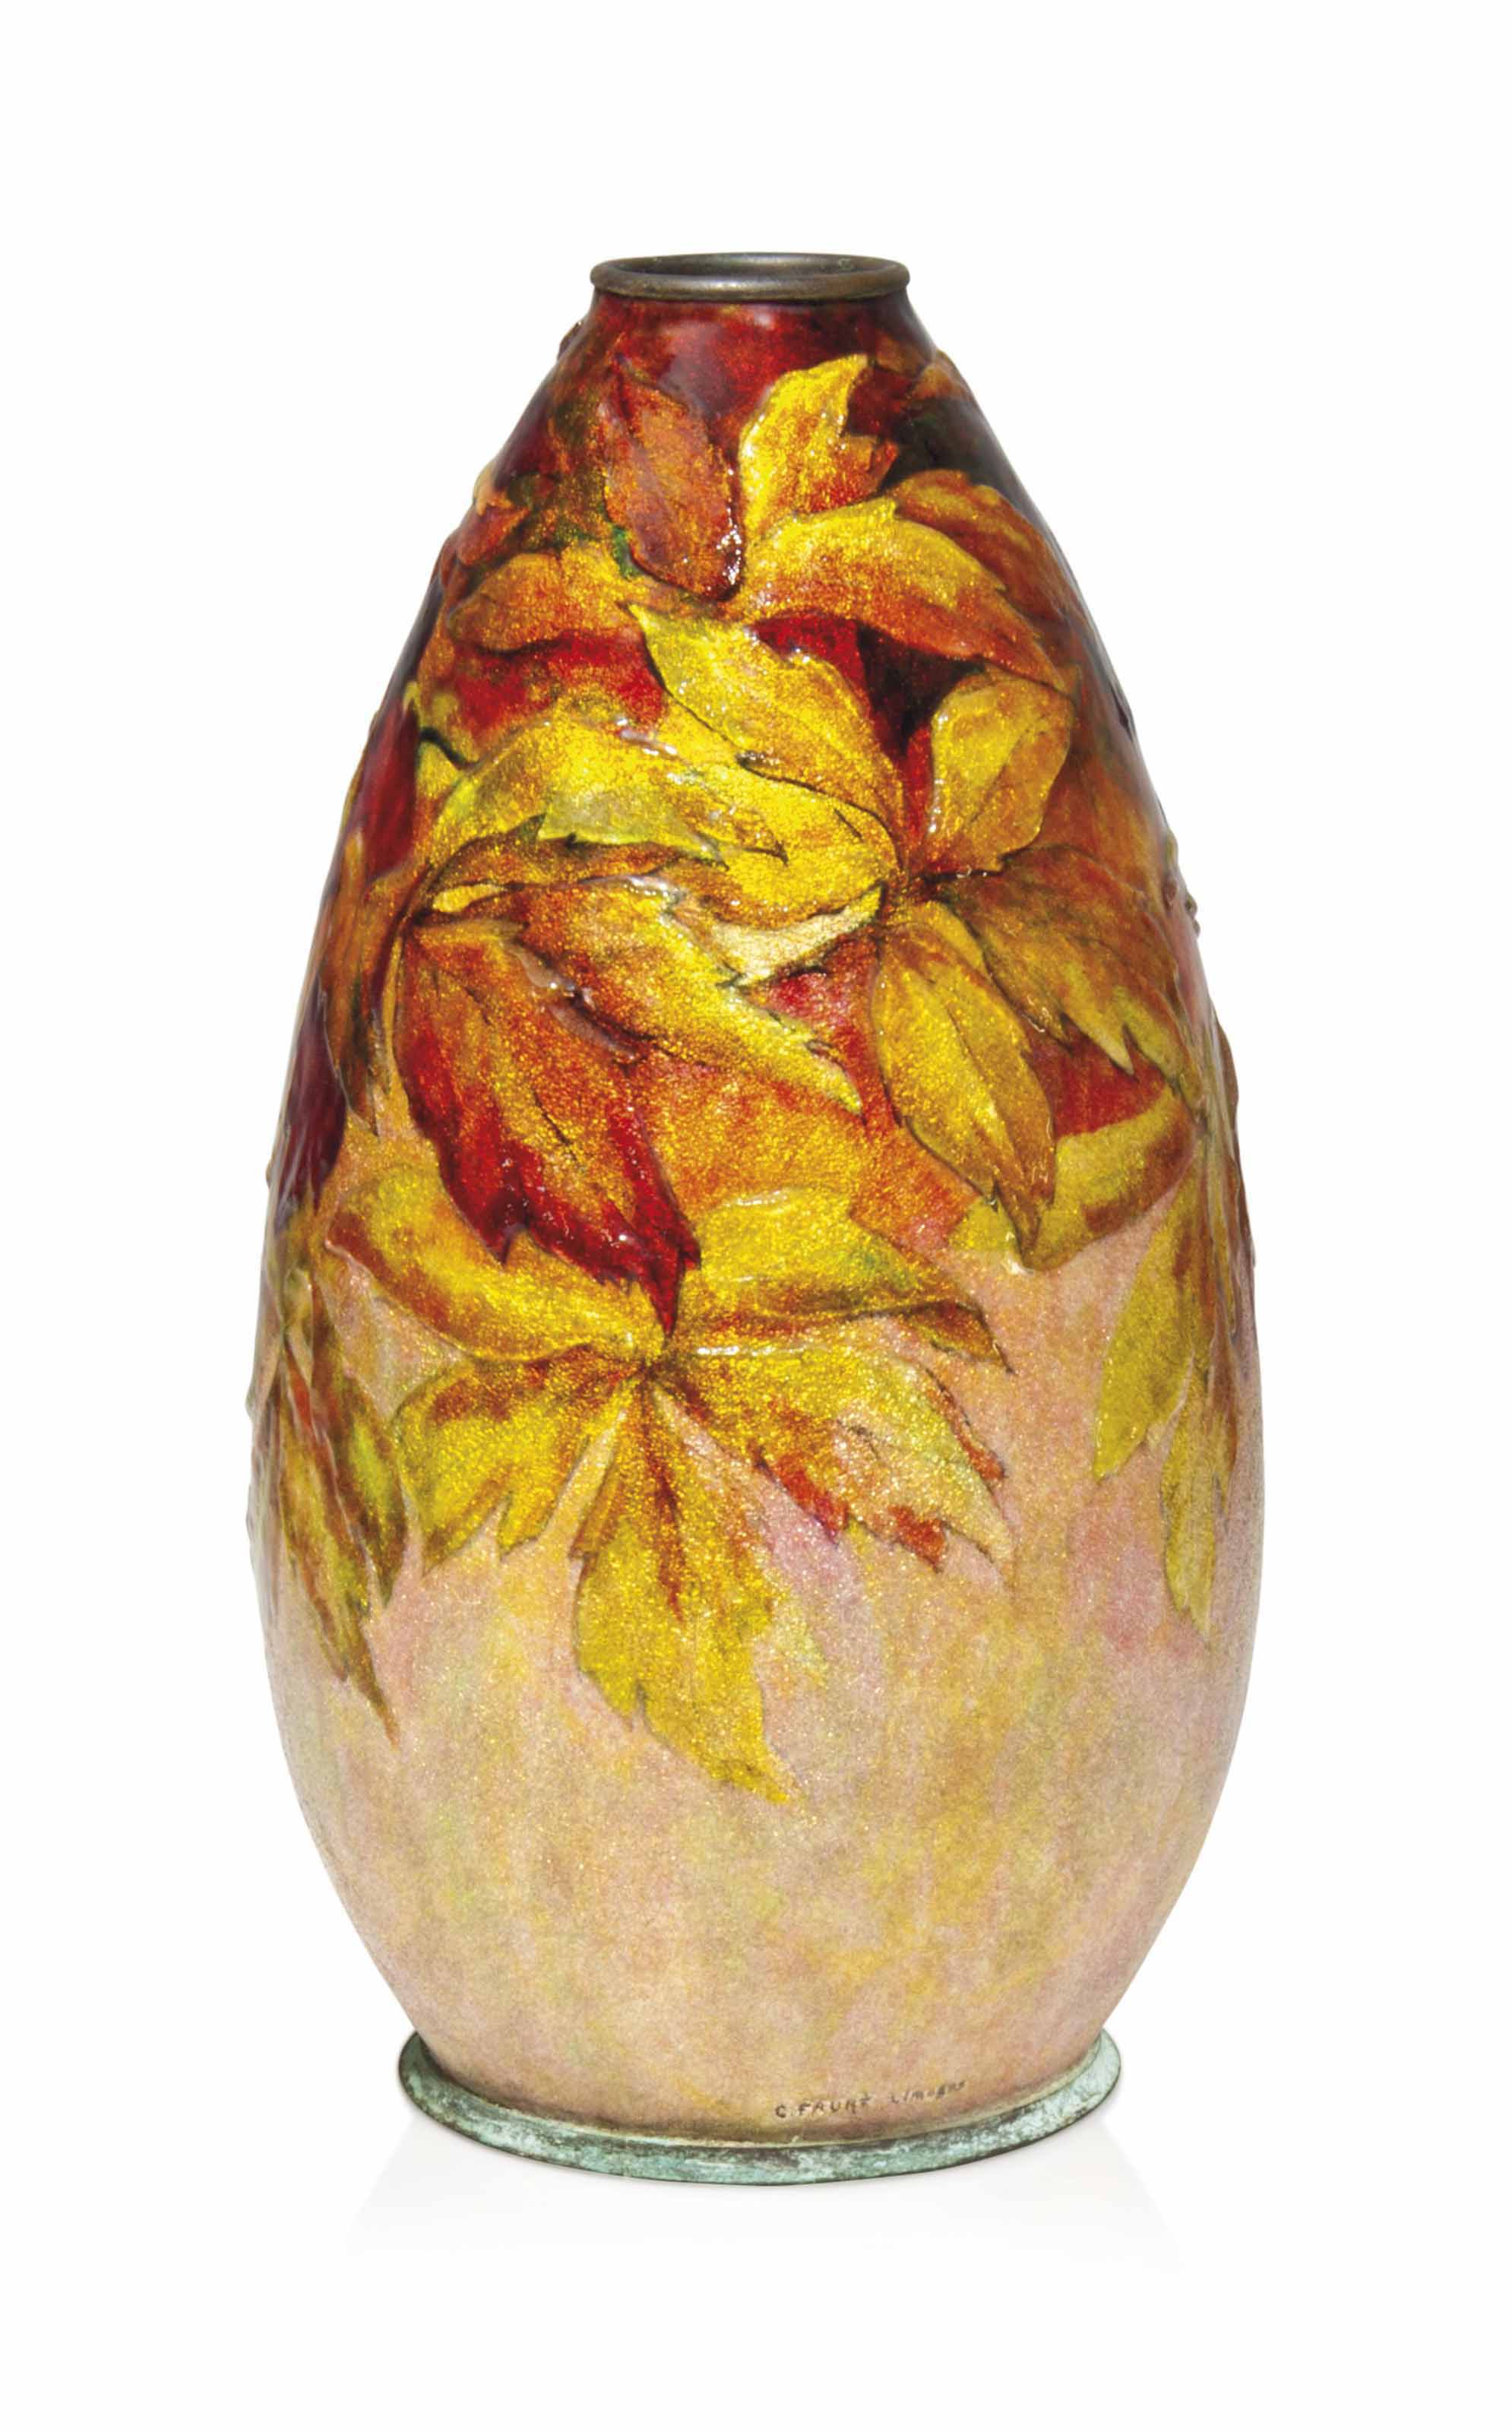 A CAMILLE FAURÉ (1874-1956) POLYCHROME ENAMELLED COPPER VASE DECORATED WITH AUTUMNAL LEAVES